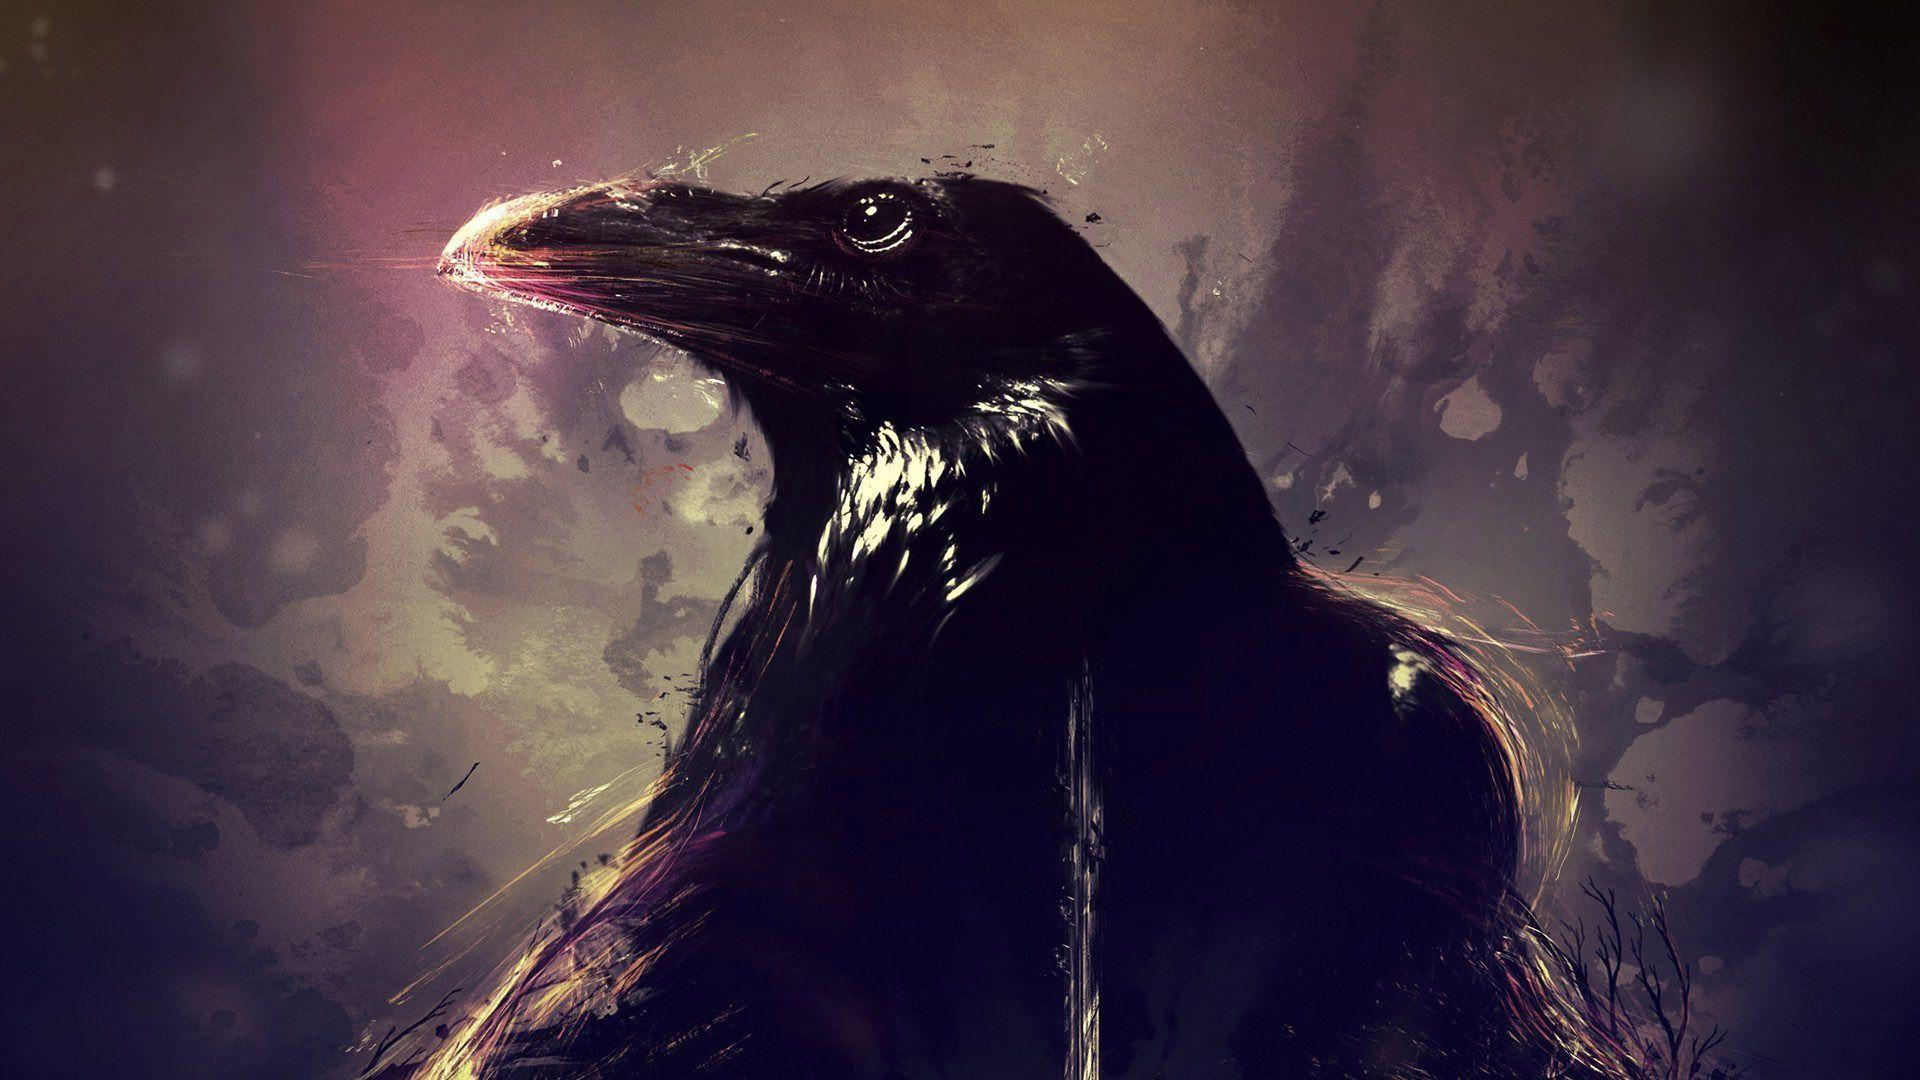 Crow wallpapers wallpaper cave - The crow wallpaper ...